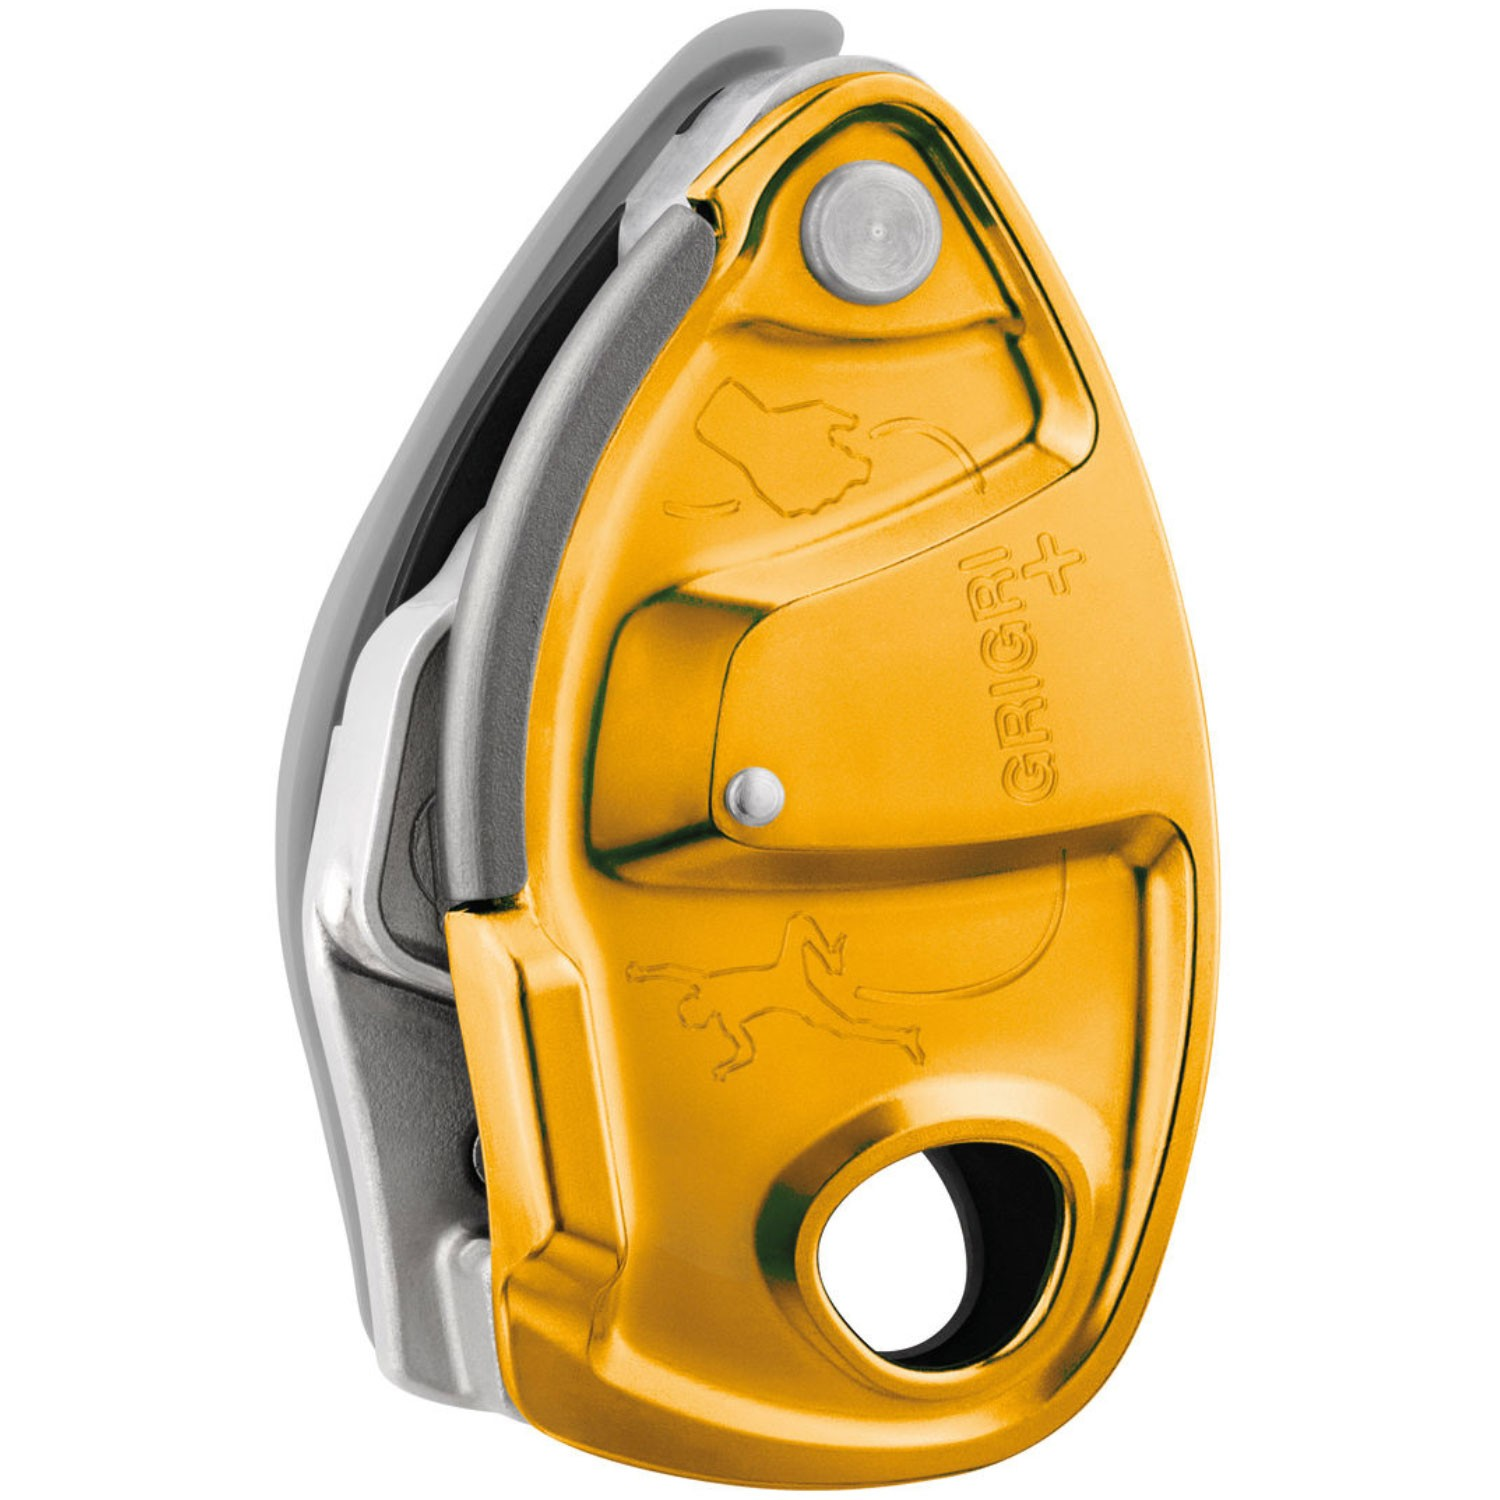 PETZL - GRIGRI+ Assisted Braking Belay Device